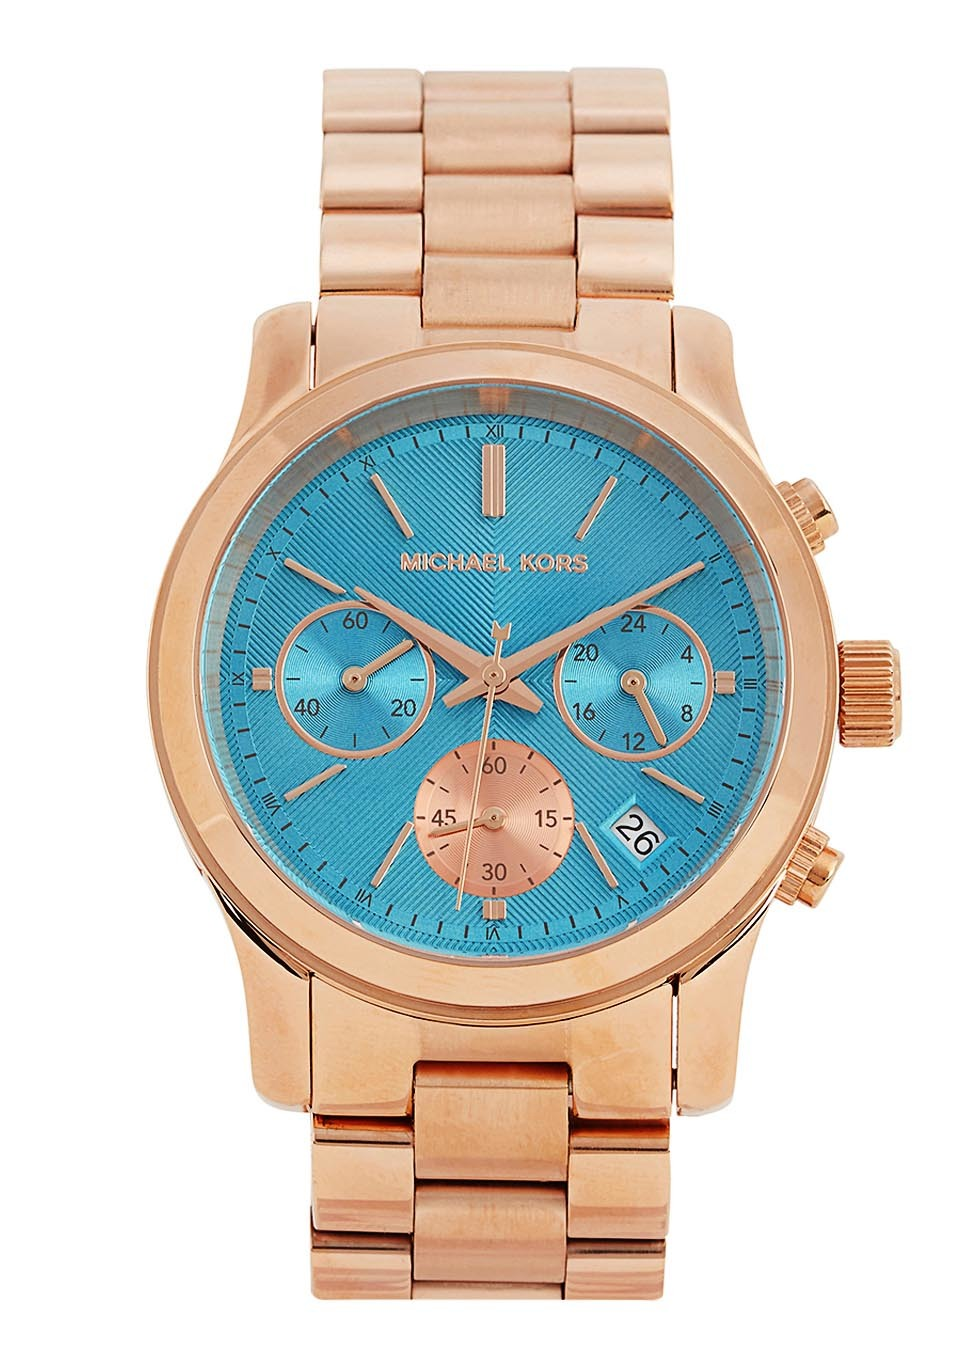 Runway Rose Gold Tone Chronograph Watch - secondary colour: turquoise; predominant colour: gold; occasions: casual, work, creative work; style: metal bracelet; size: standard; material: chain/metal; finish: metallic; pattern: plain; season: s/s 2016